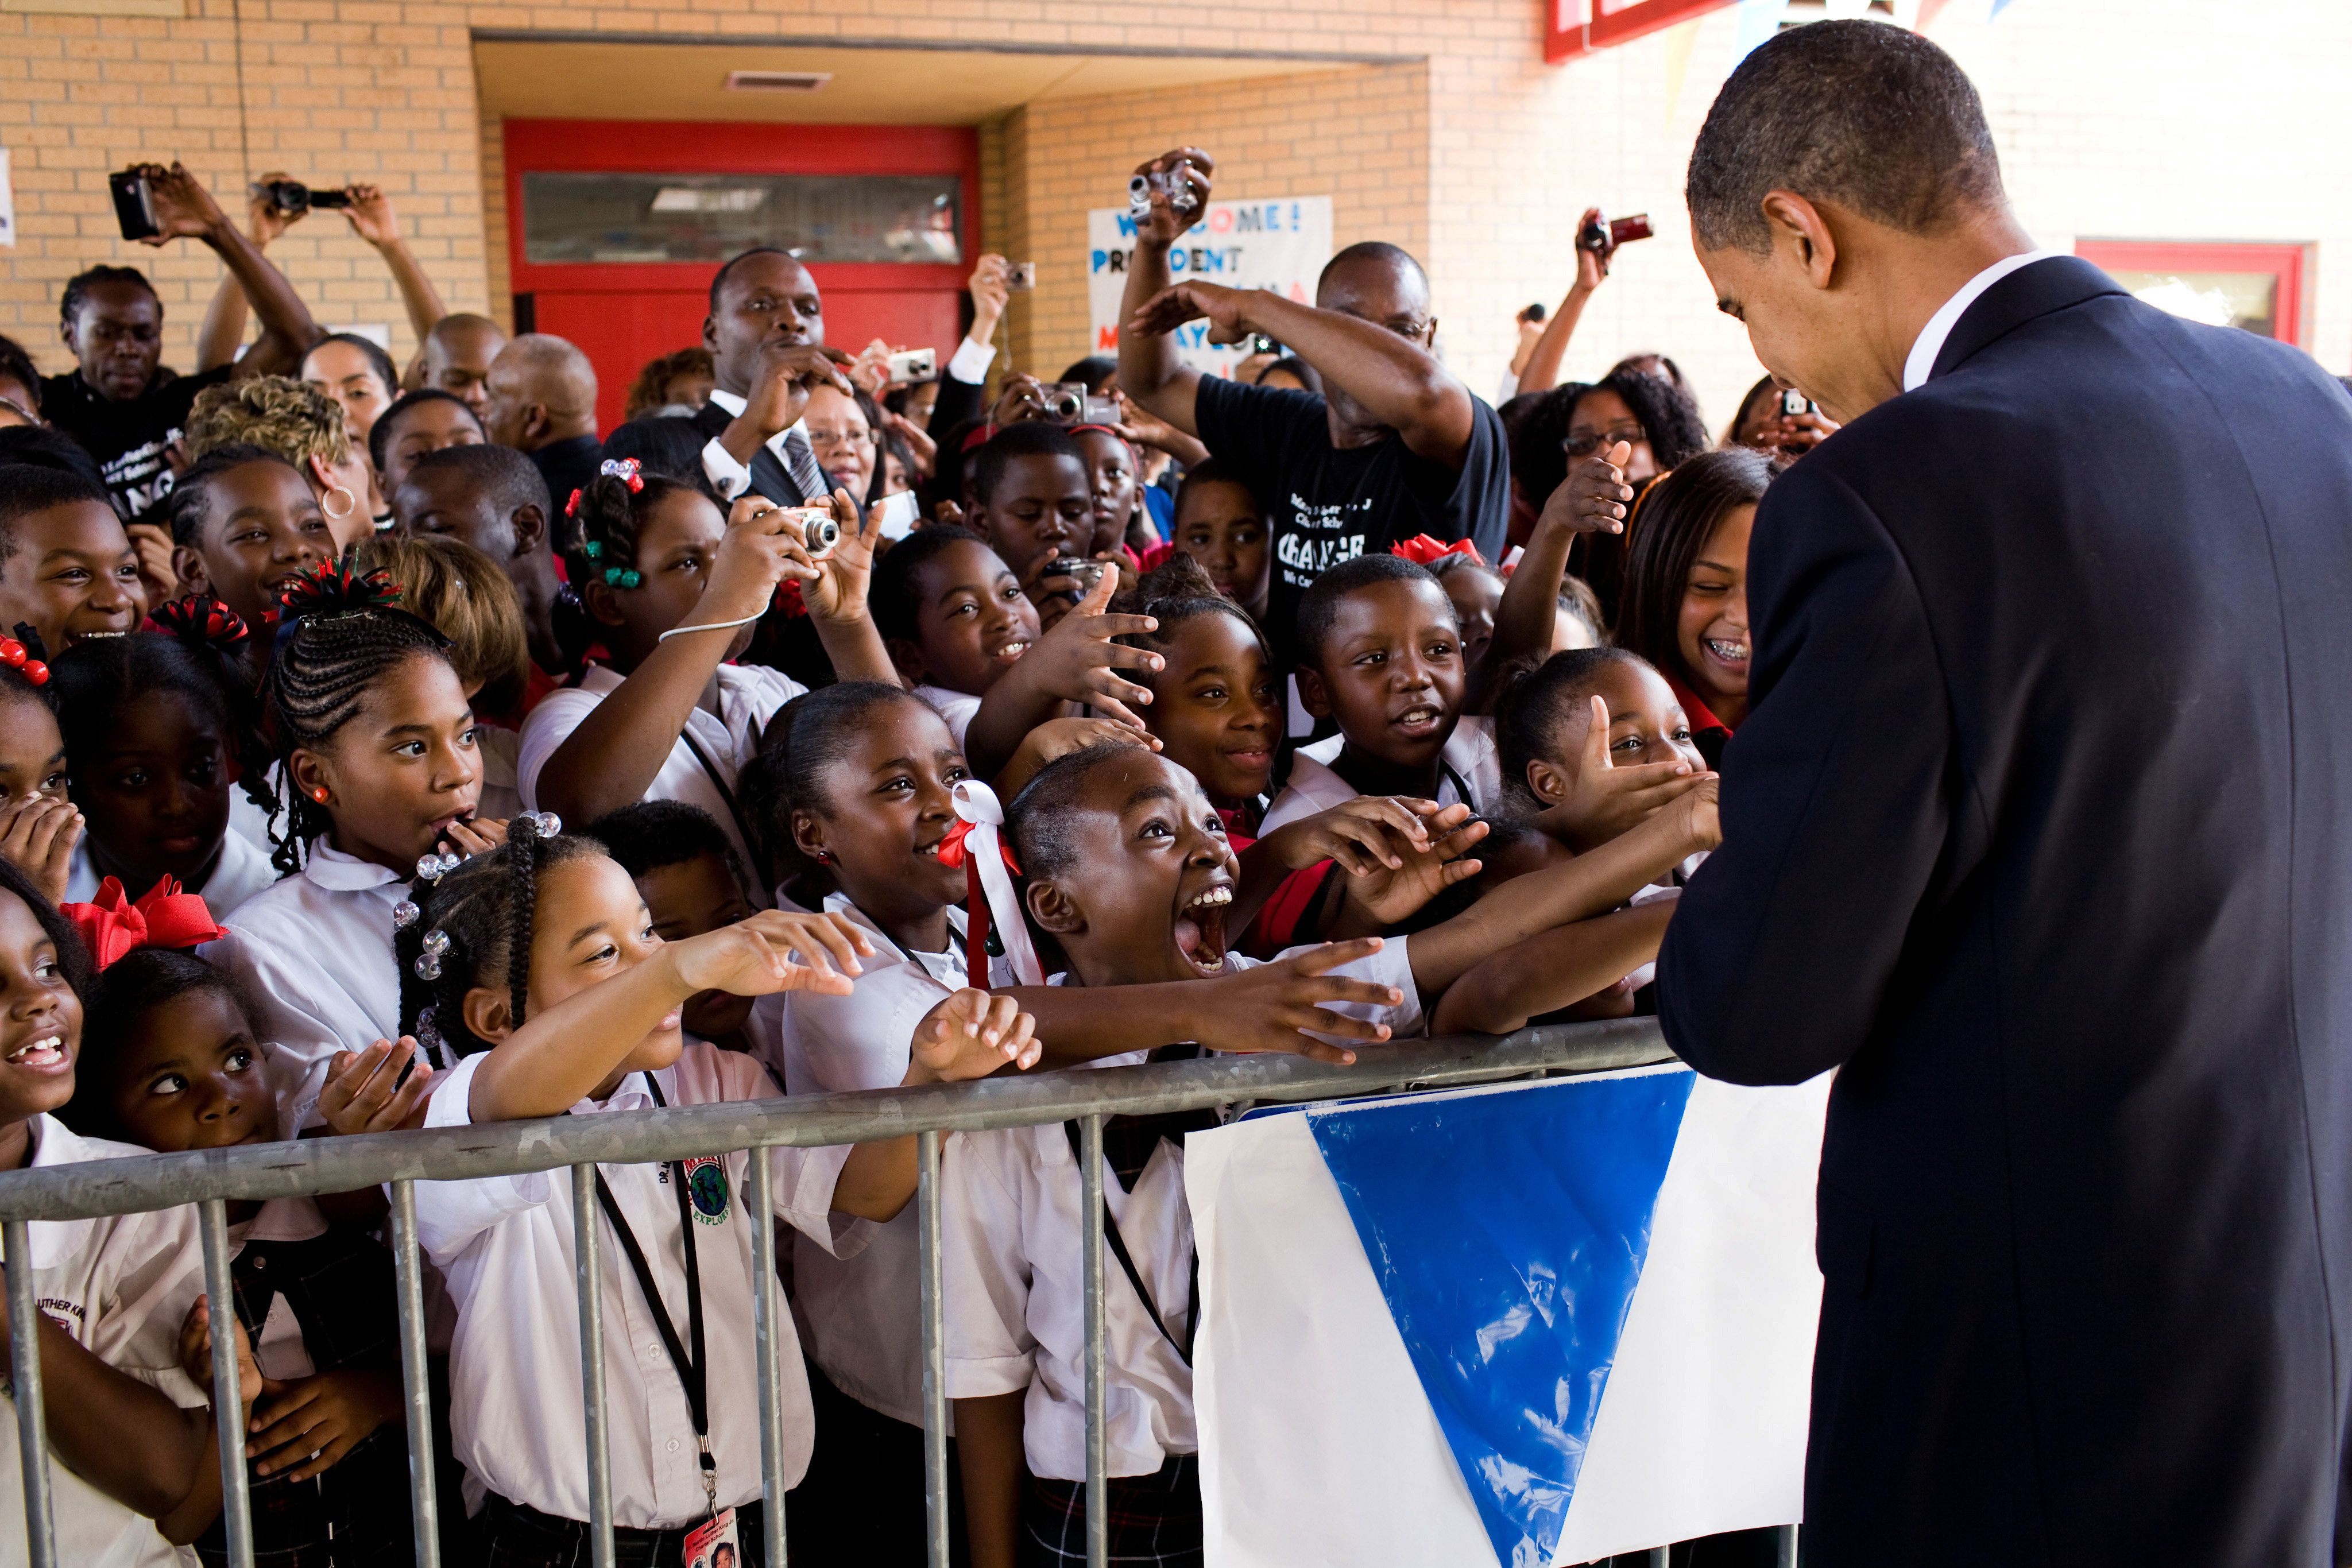 Students show their excitement at meeting President Barack Obama during his visit to Dr. Martin Luther King Jr. Charter School in New Orleans, La., Oct. 15, 2009. (Official White House Photo by Pete Souza)